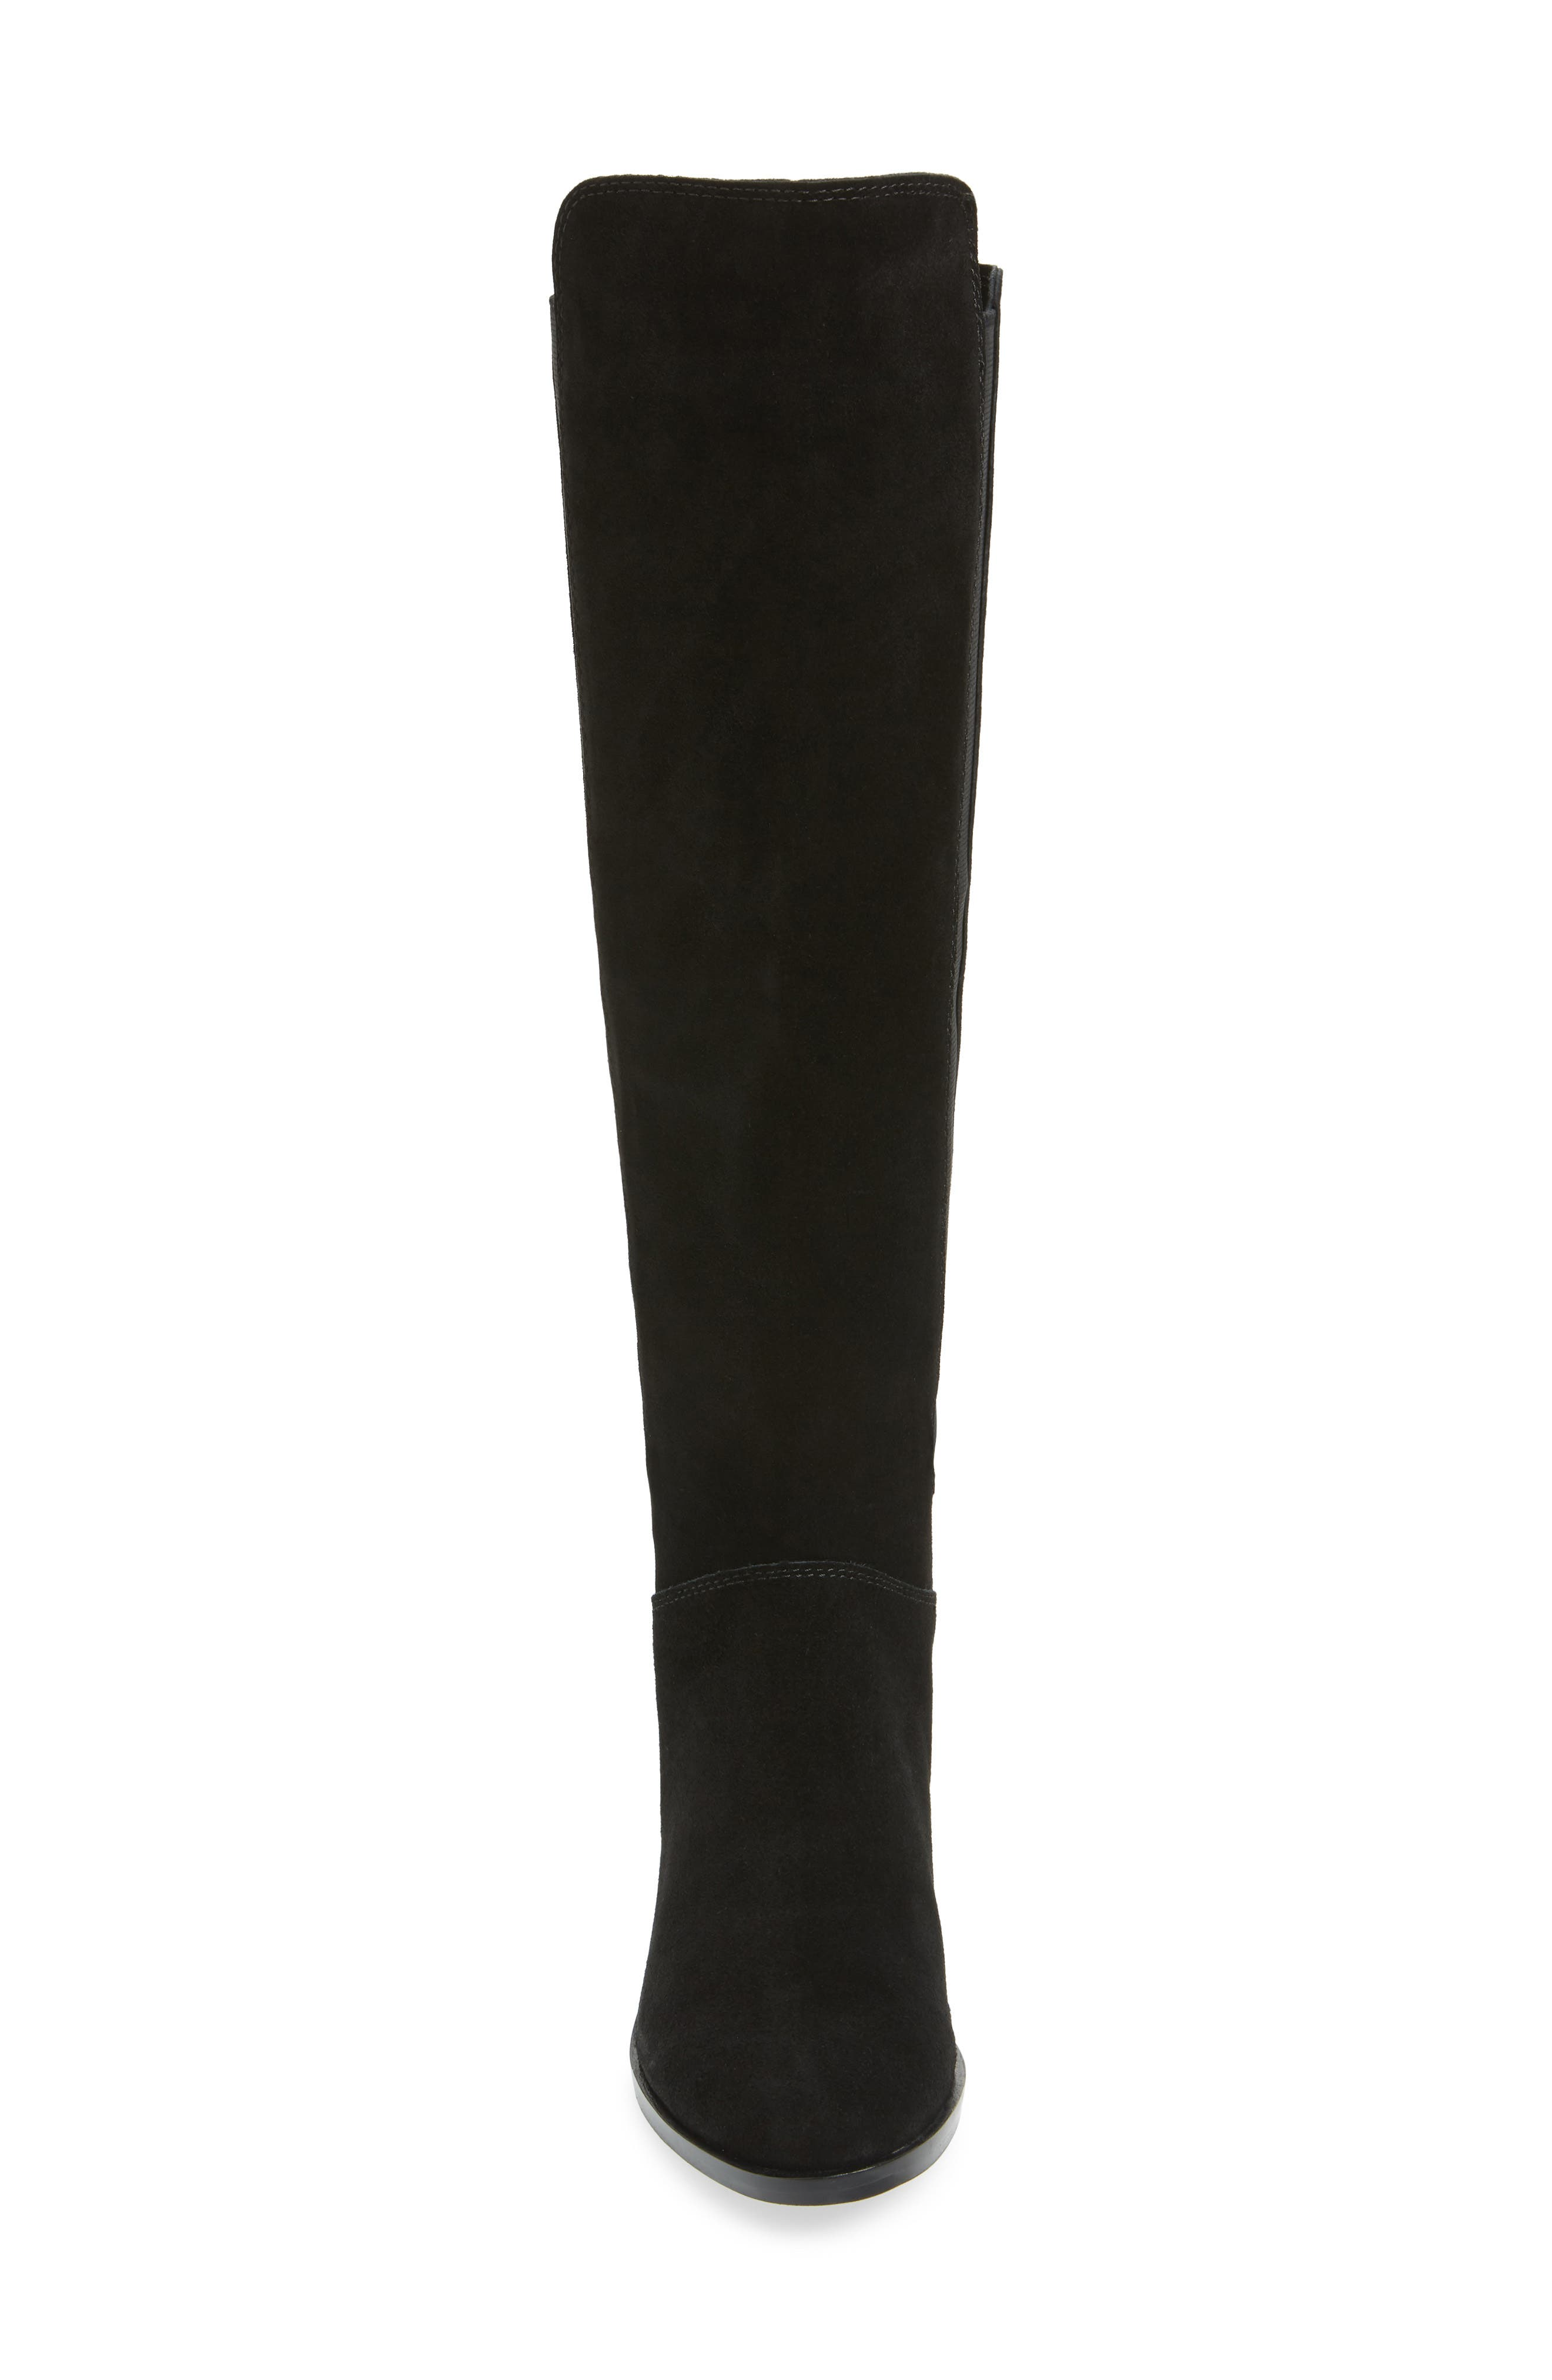 Giselle Over the Knee Boot,                             Alternate thumbnail 4, color,                             BLACK SUEDE